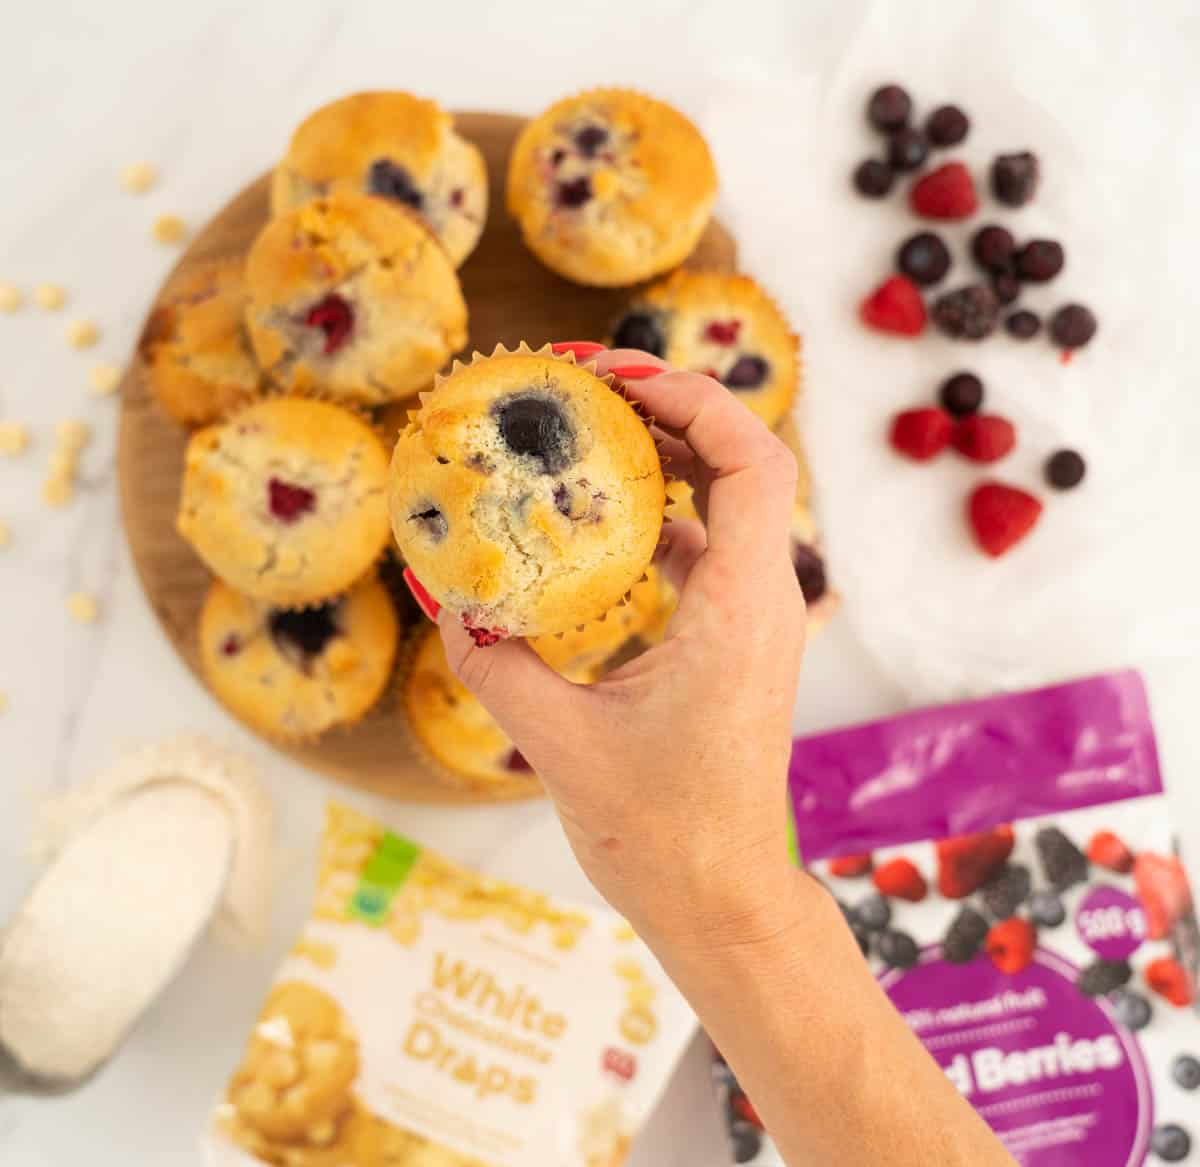 Woman's hand holding a berry muffin above a wooden tray of muffins.